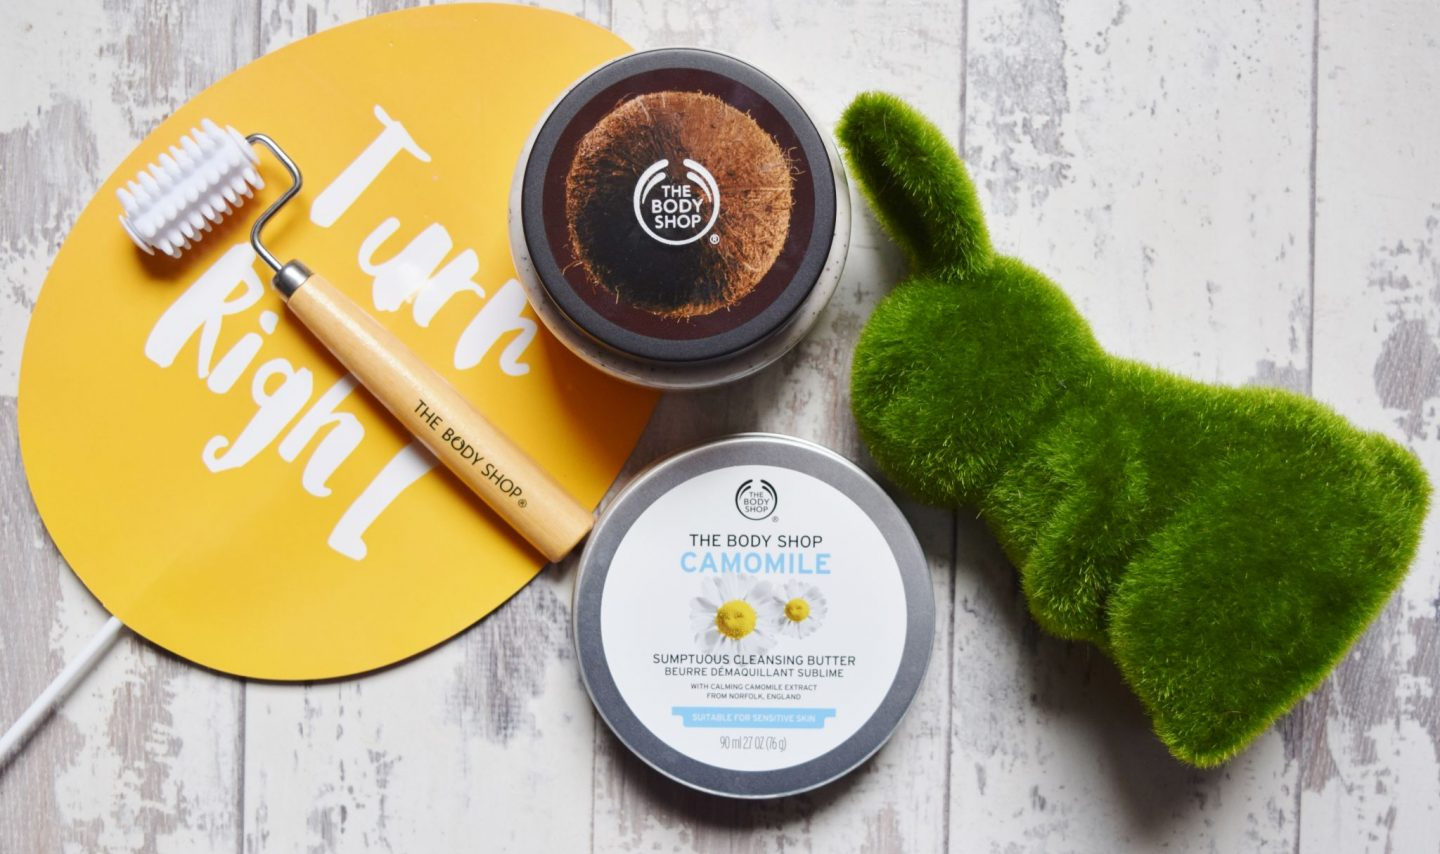 the body shop products